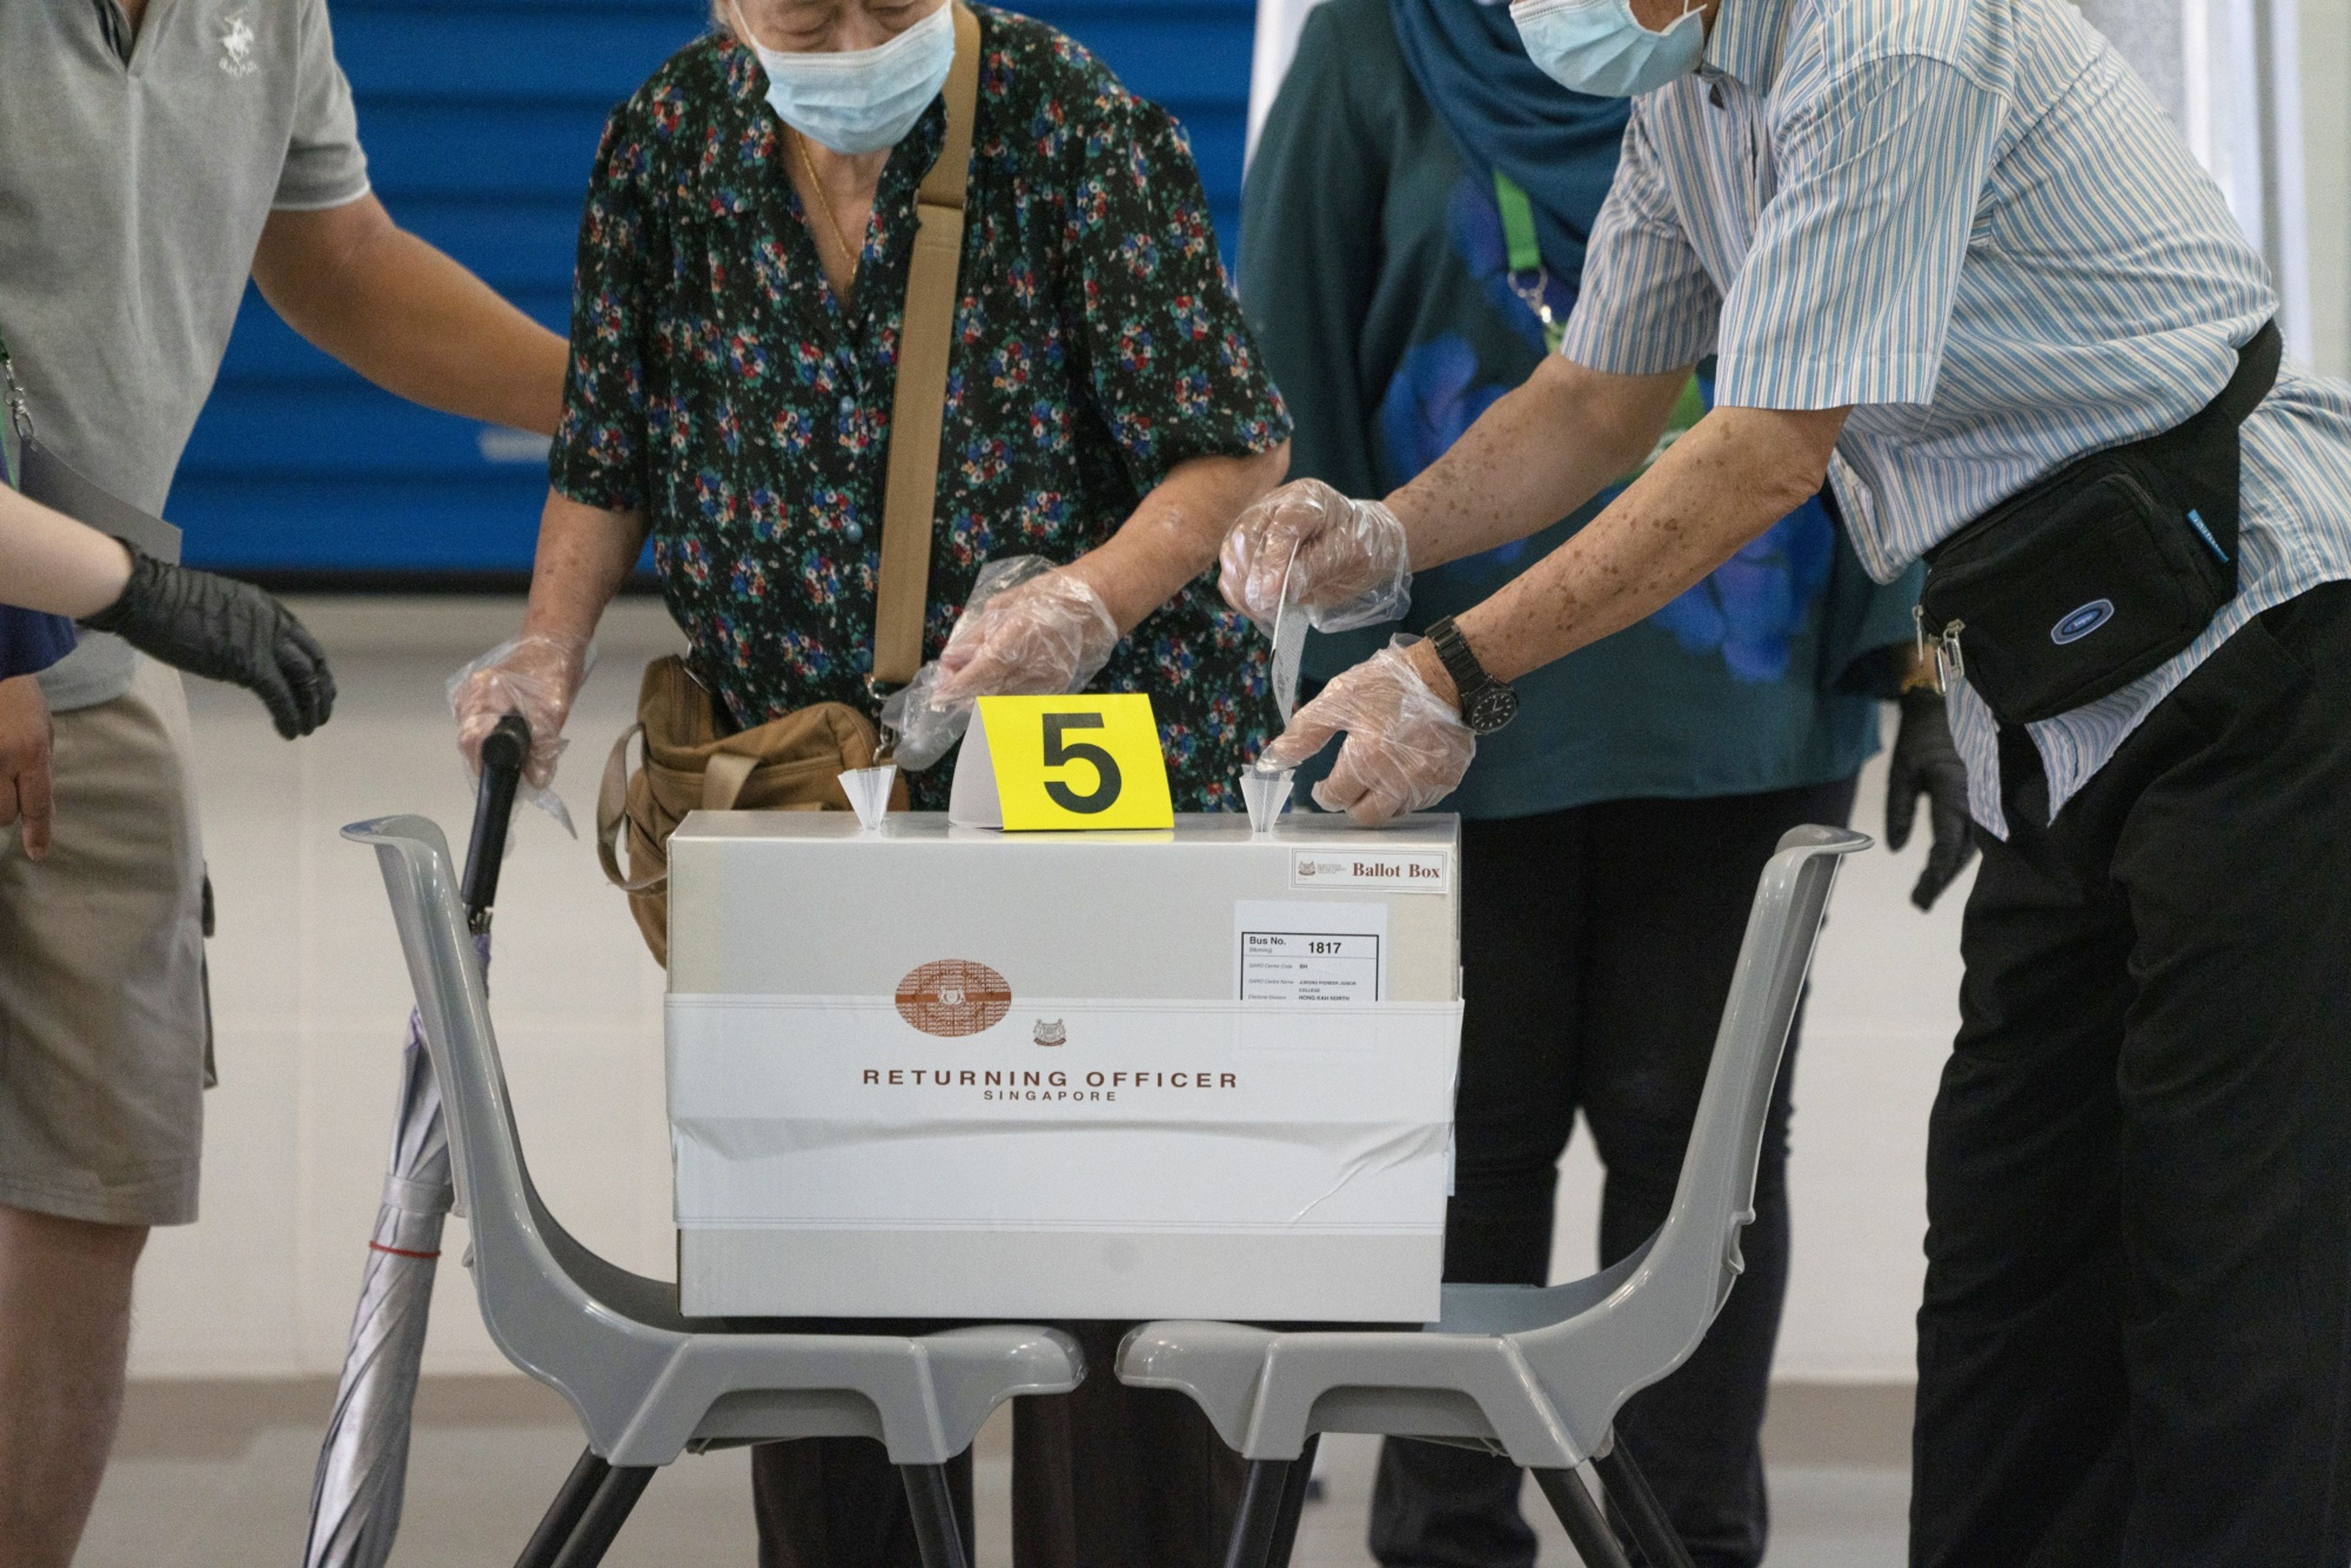 A voter wearing a protective mask and gloves is assisted to place her vote slip into a ballot box during the Early and Senior Voting Band at the Dunearn Secondary School polling station in Singapore. Photo: Bloomberg